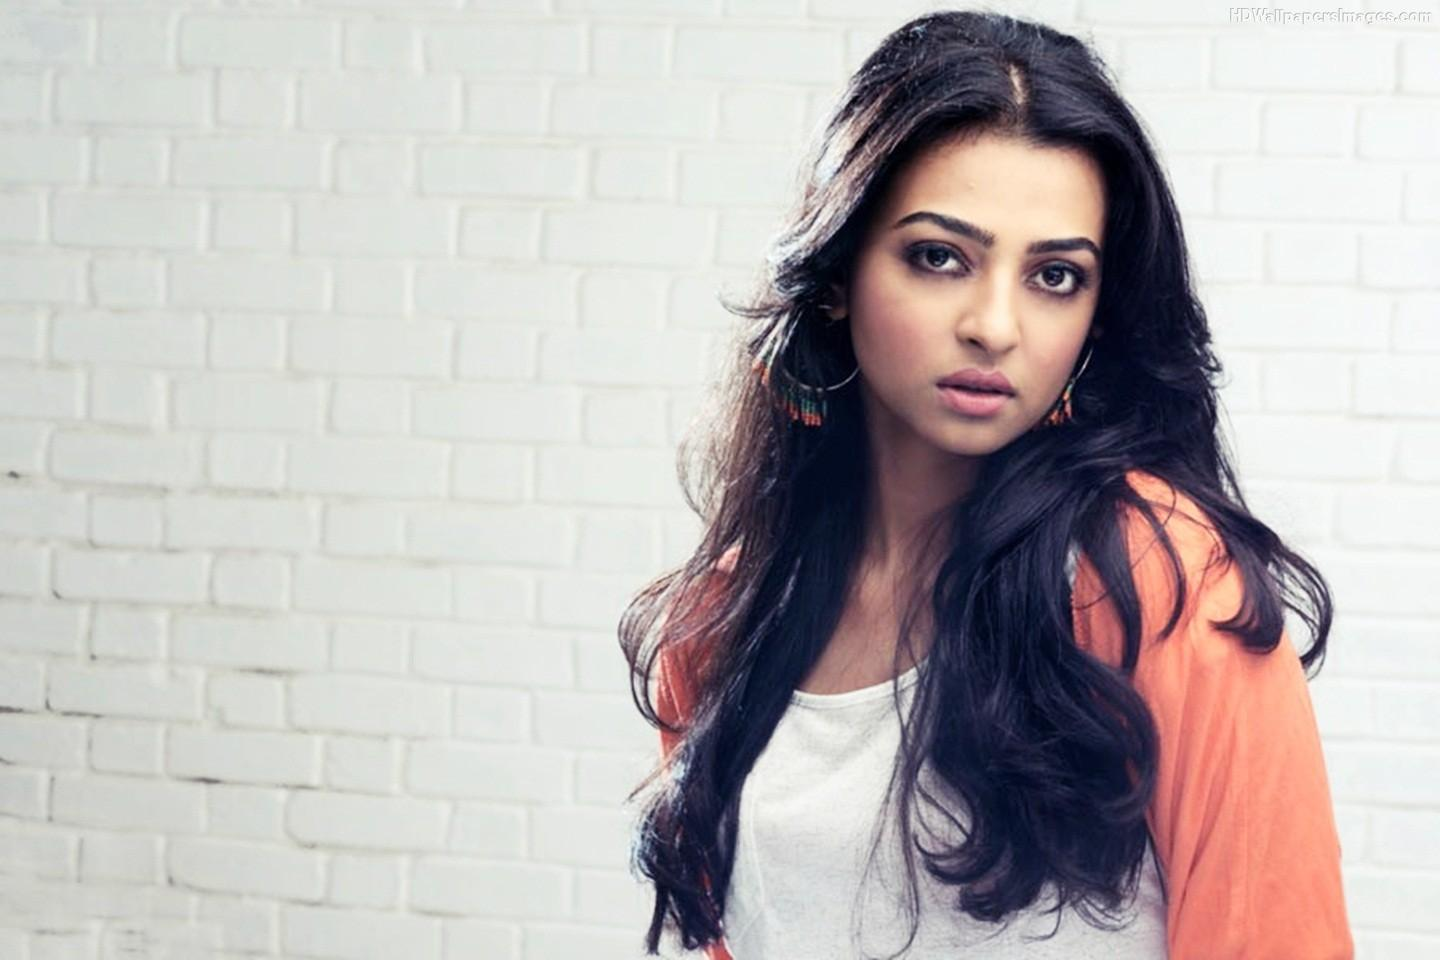 http://img.wallpaperfolder.com/f/60CF4E5252AA/radhika-apte-beautiful.jpg